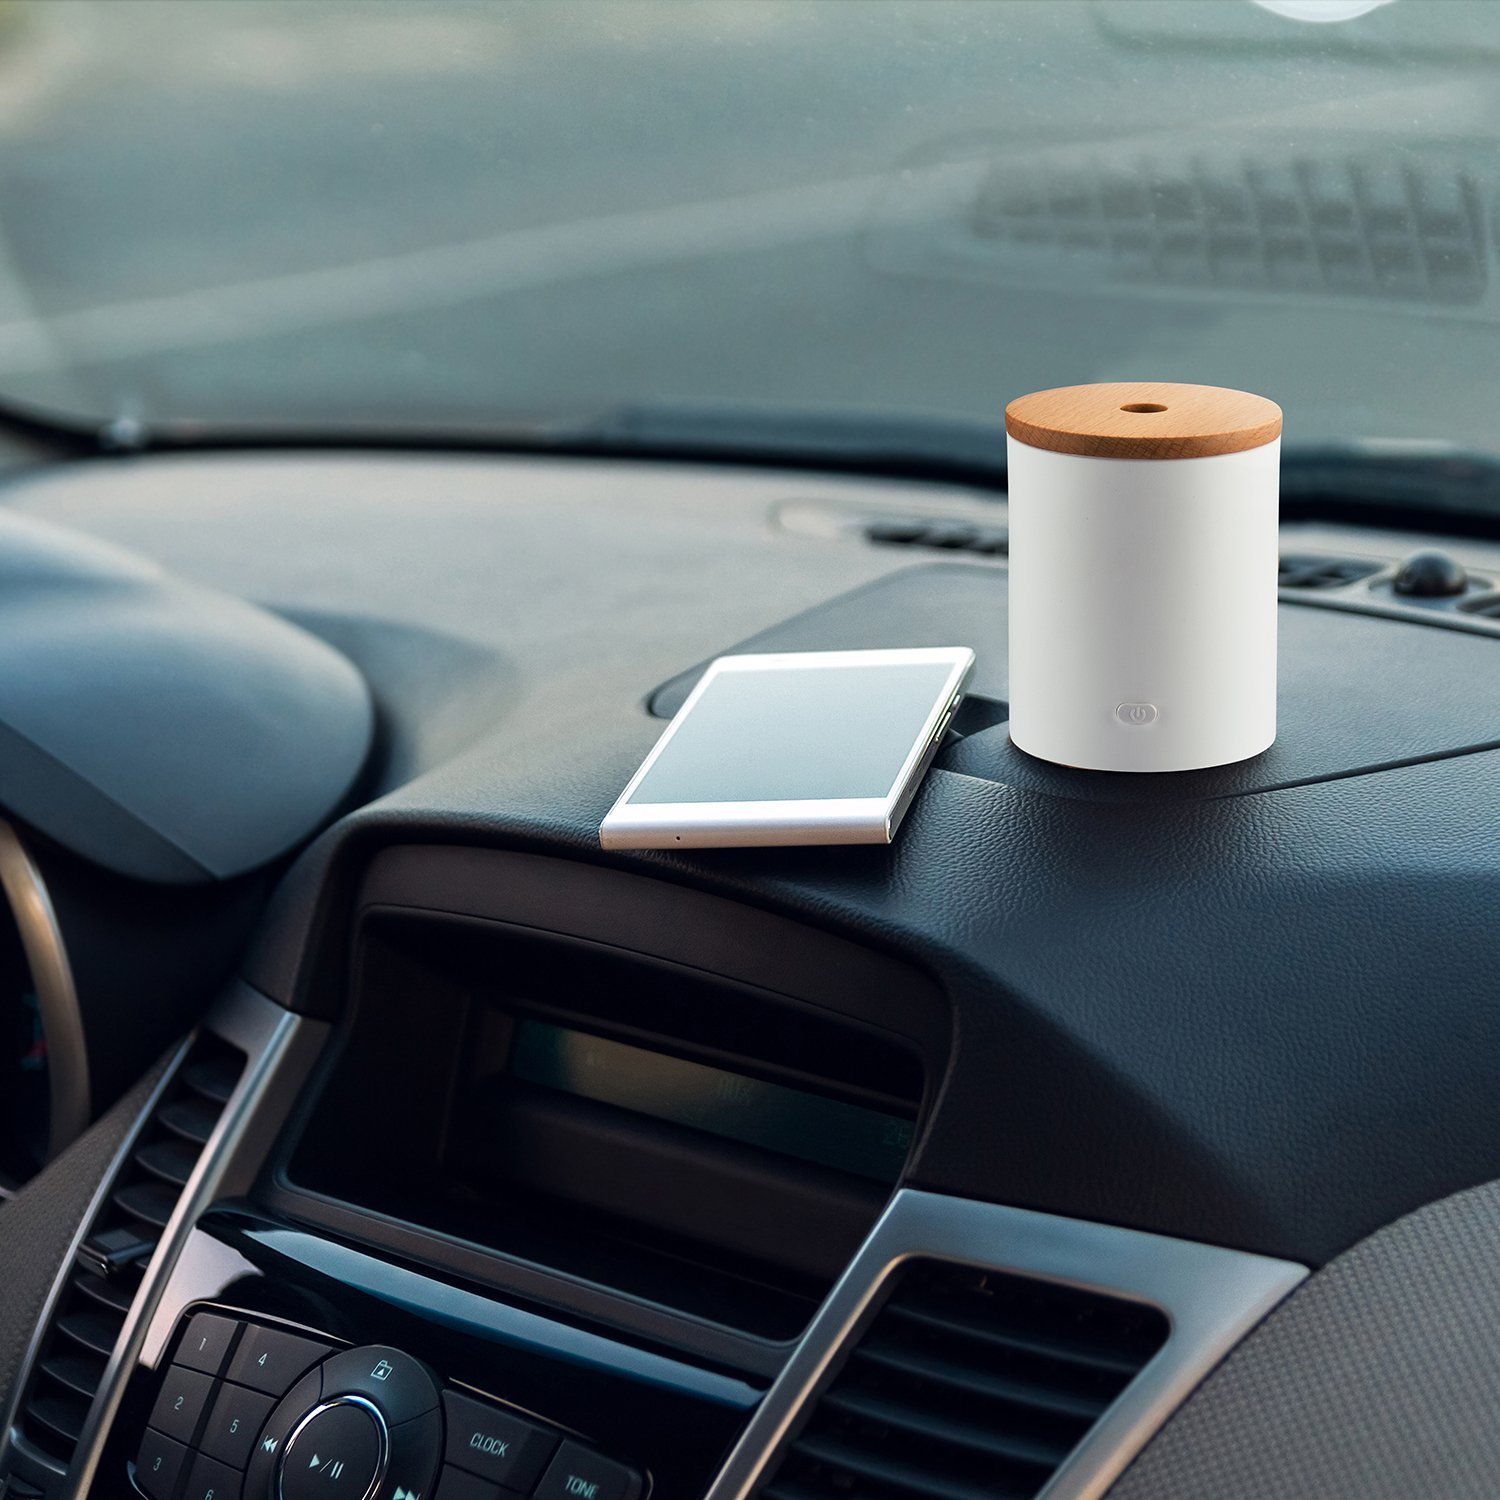 essential oil diffusers under $25 best on Amazon no water car portable